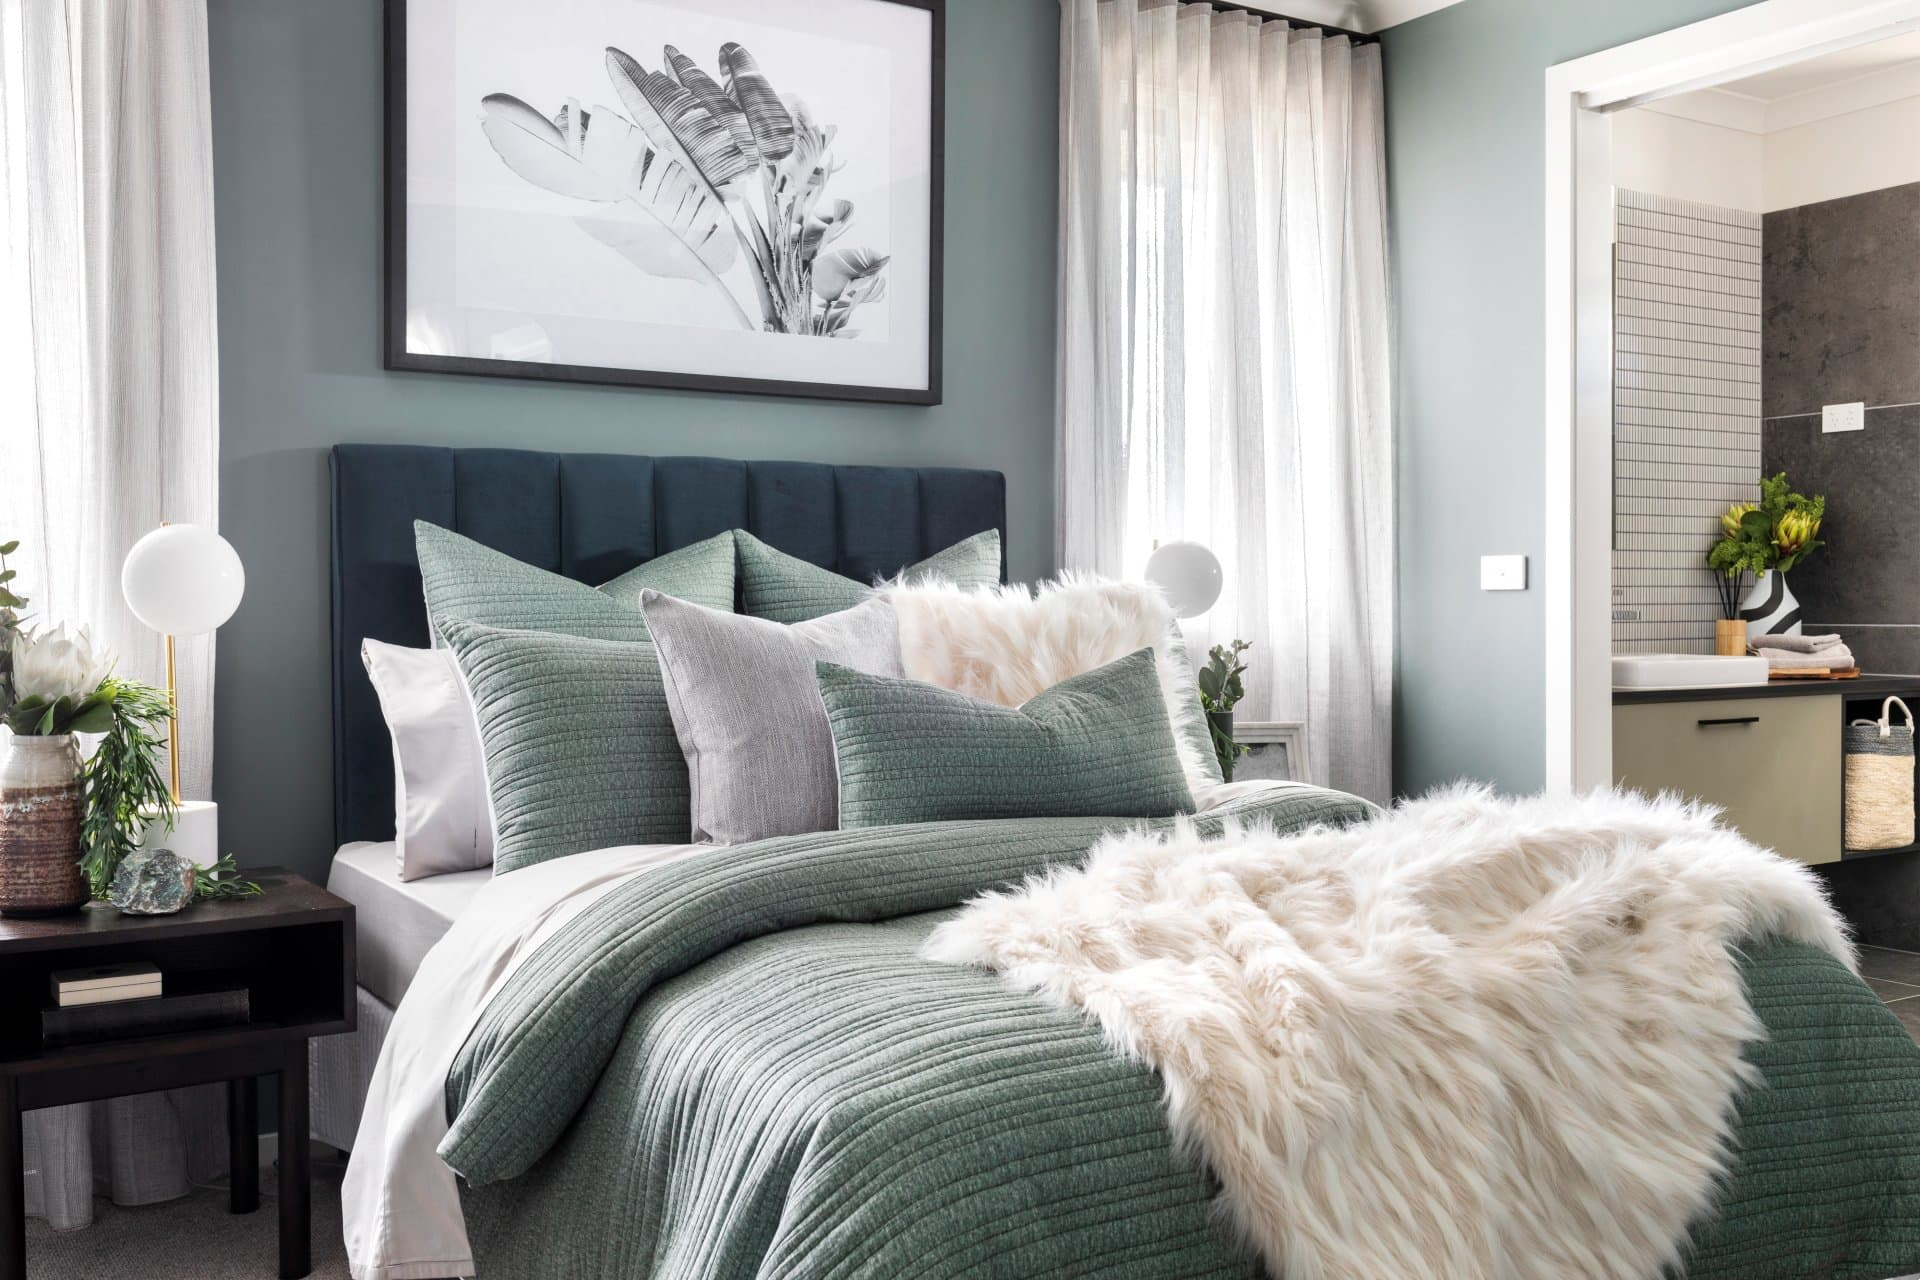 olive green bedding set with white faux fur throw and cushions from lorraine lea